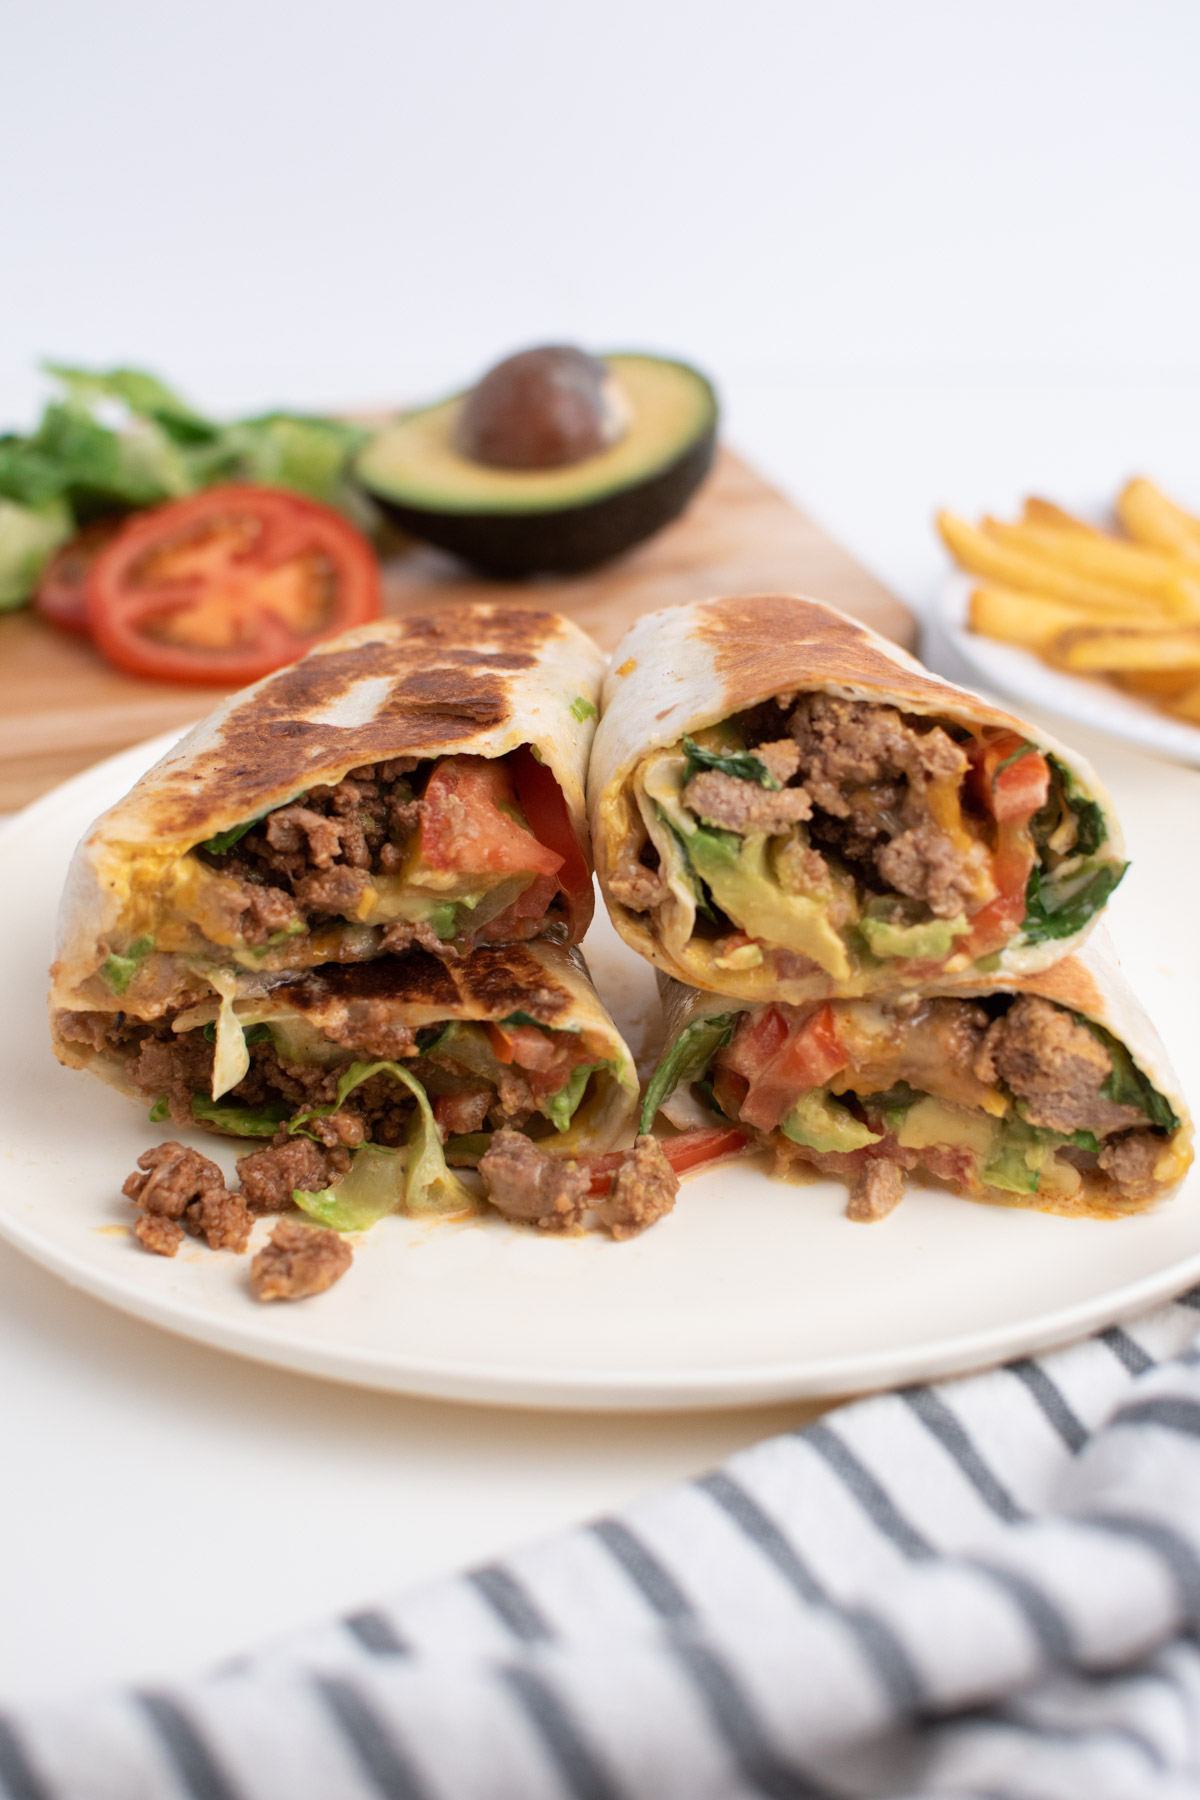 Burger wraps on cream plate next to French fries and burger toppings.